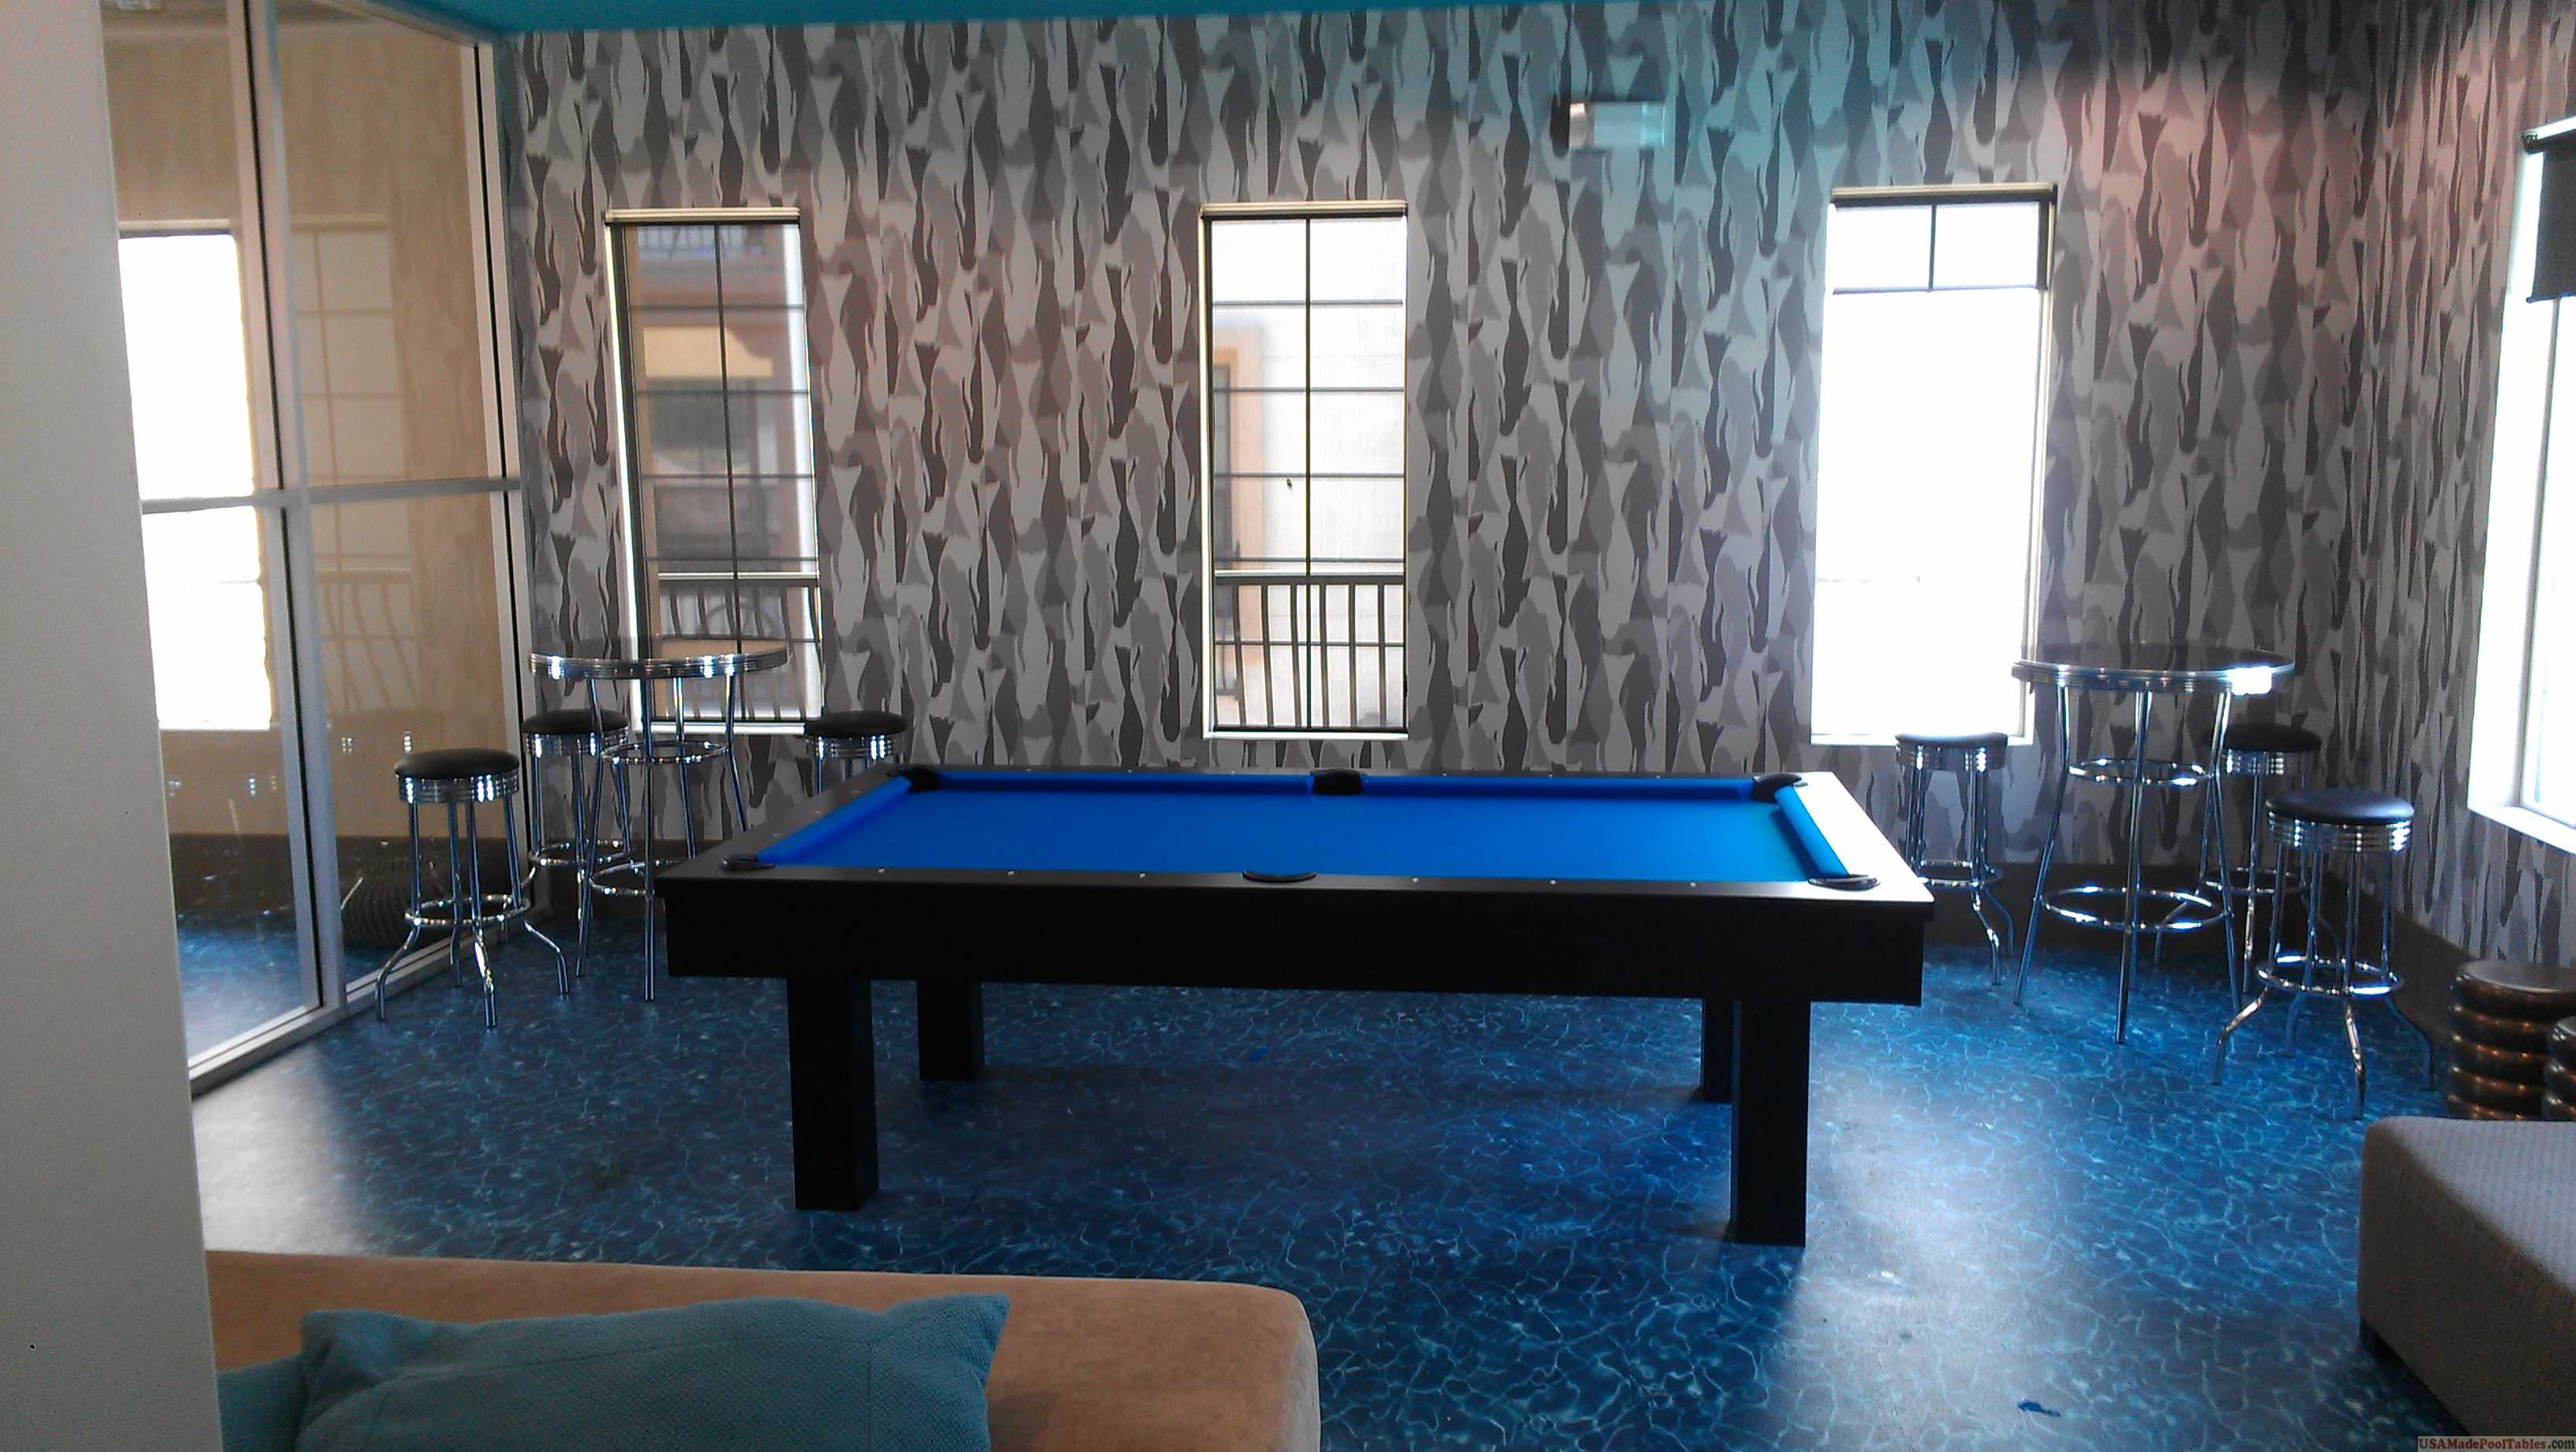 THE TAMPA POOL TABLES FOR SALE BILLIARDS POOL TABLE POOL - Pool table movers tampa